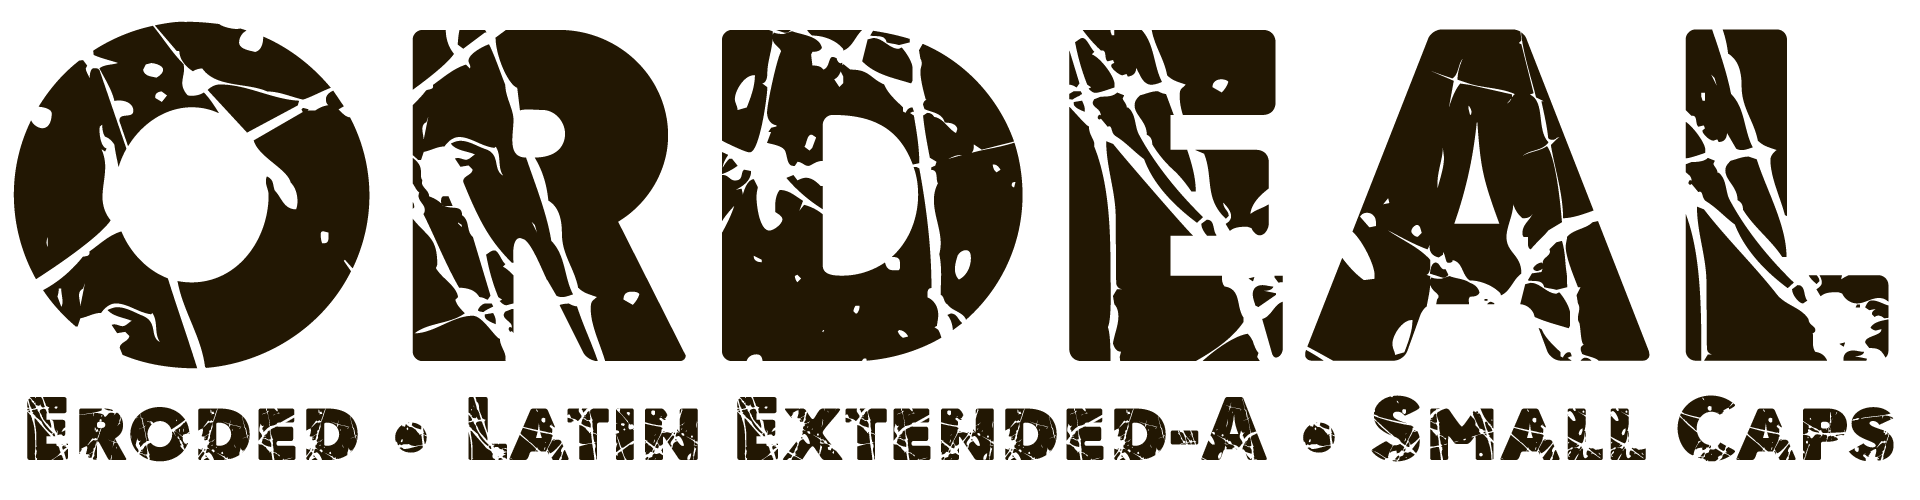 Ordeal Eroded Display Font Latin Extended-A